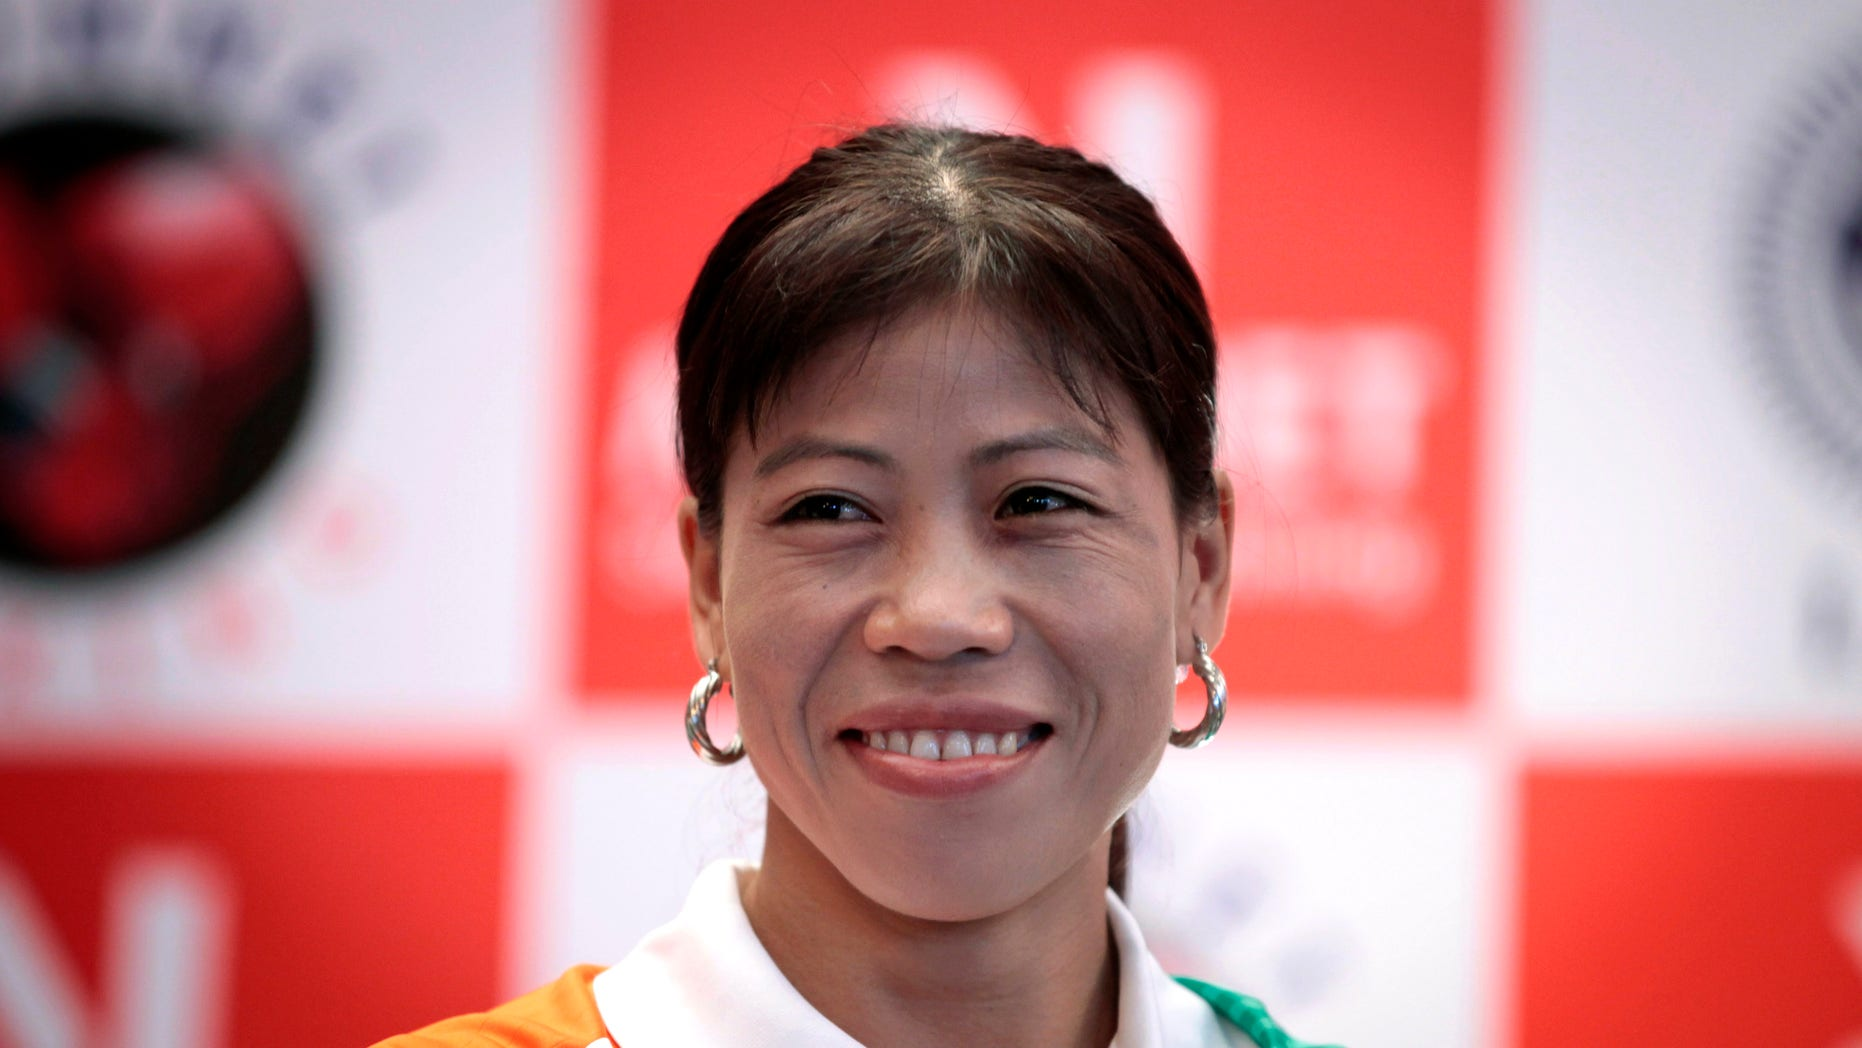 July 12, 2012: Indian woman boxer M.C. Mary Kom, who will compete in the upcoming Olympic Games, smiles during a press conference in New Delhi, India.